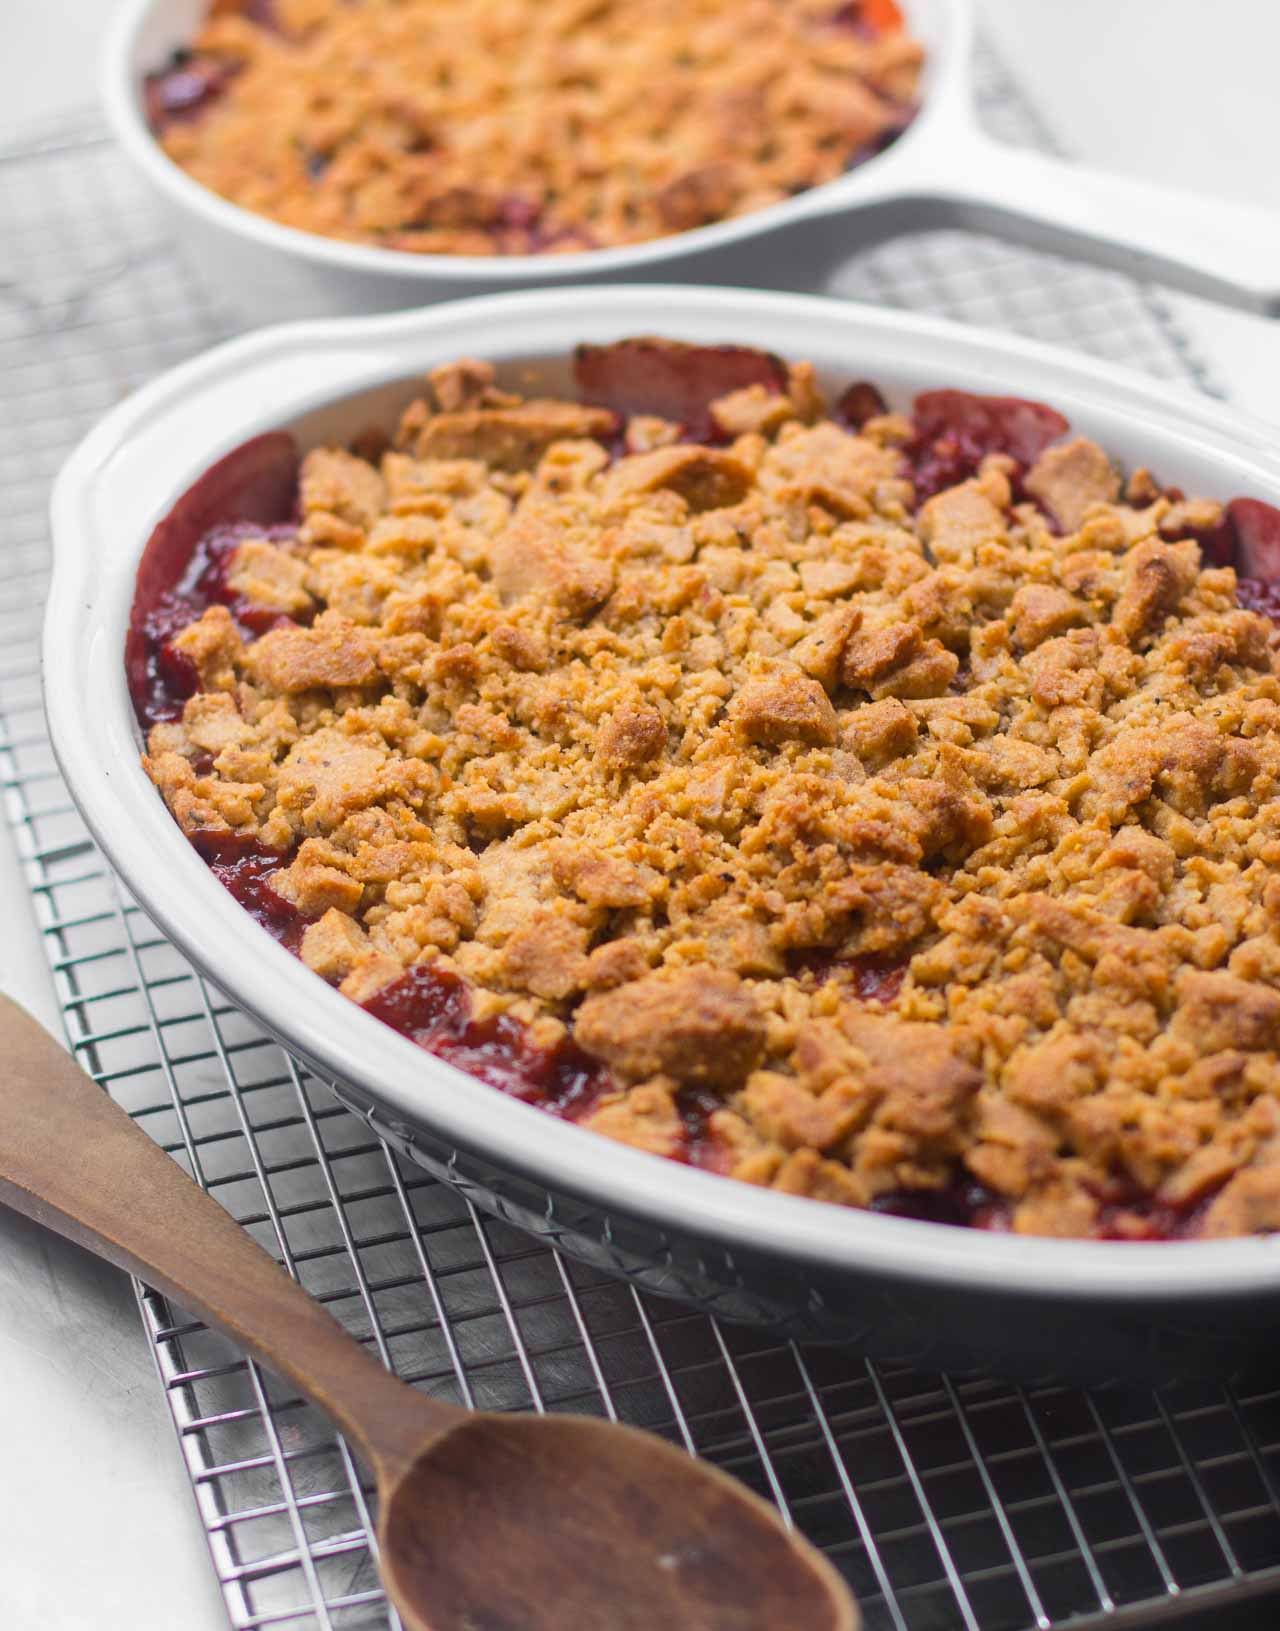 A juicy, delicious fruit crisp with flavorful plums and tangy rhubarb!